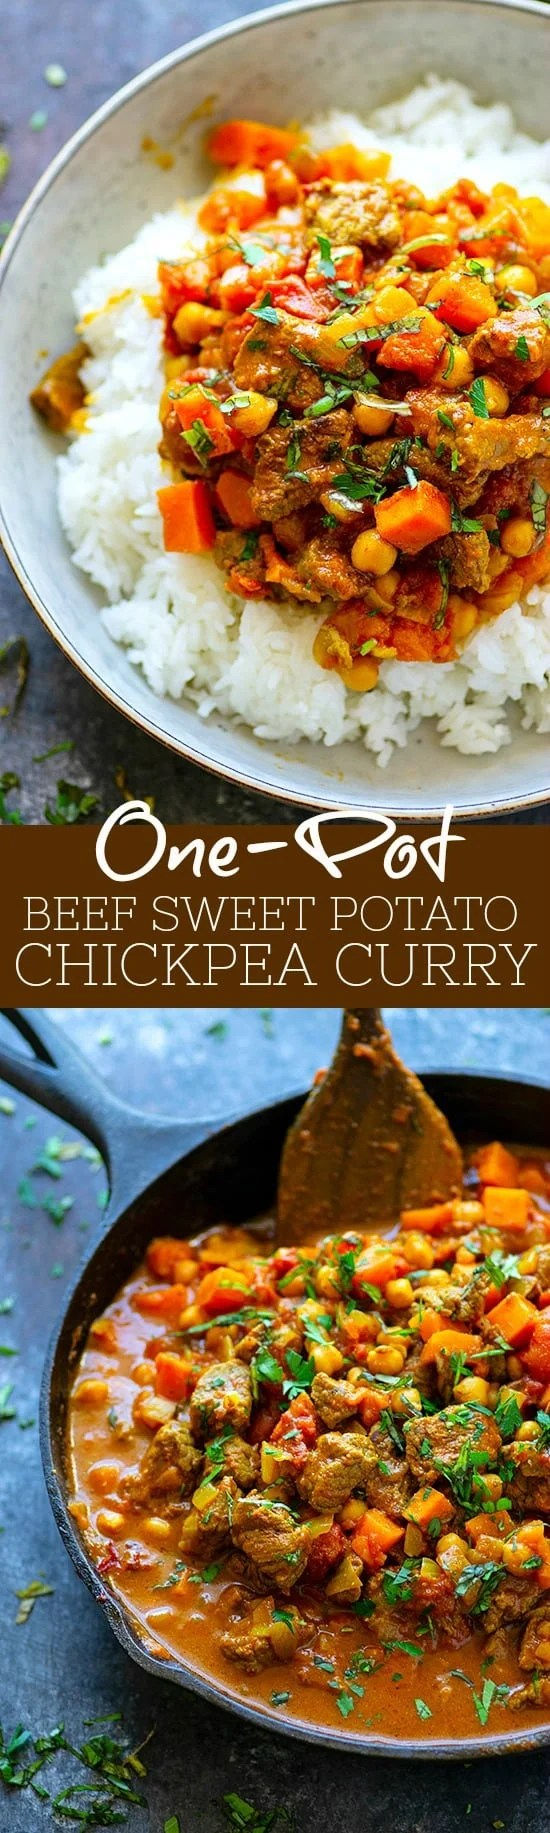 One-Pot Beef Sweet Potato Chickpea Curry - Tender sweet potatoes and melt-in-your-mouth beef  paired with tons of cozy curry spices make this one-pot beef sweet potato chickpea curry one for the dinner record books!